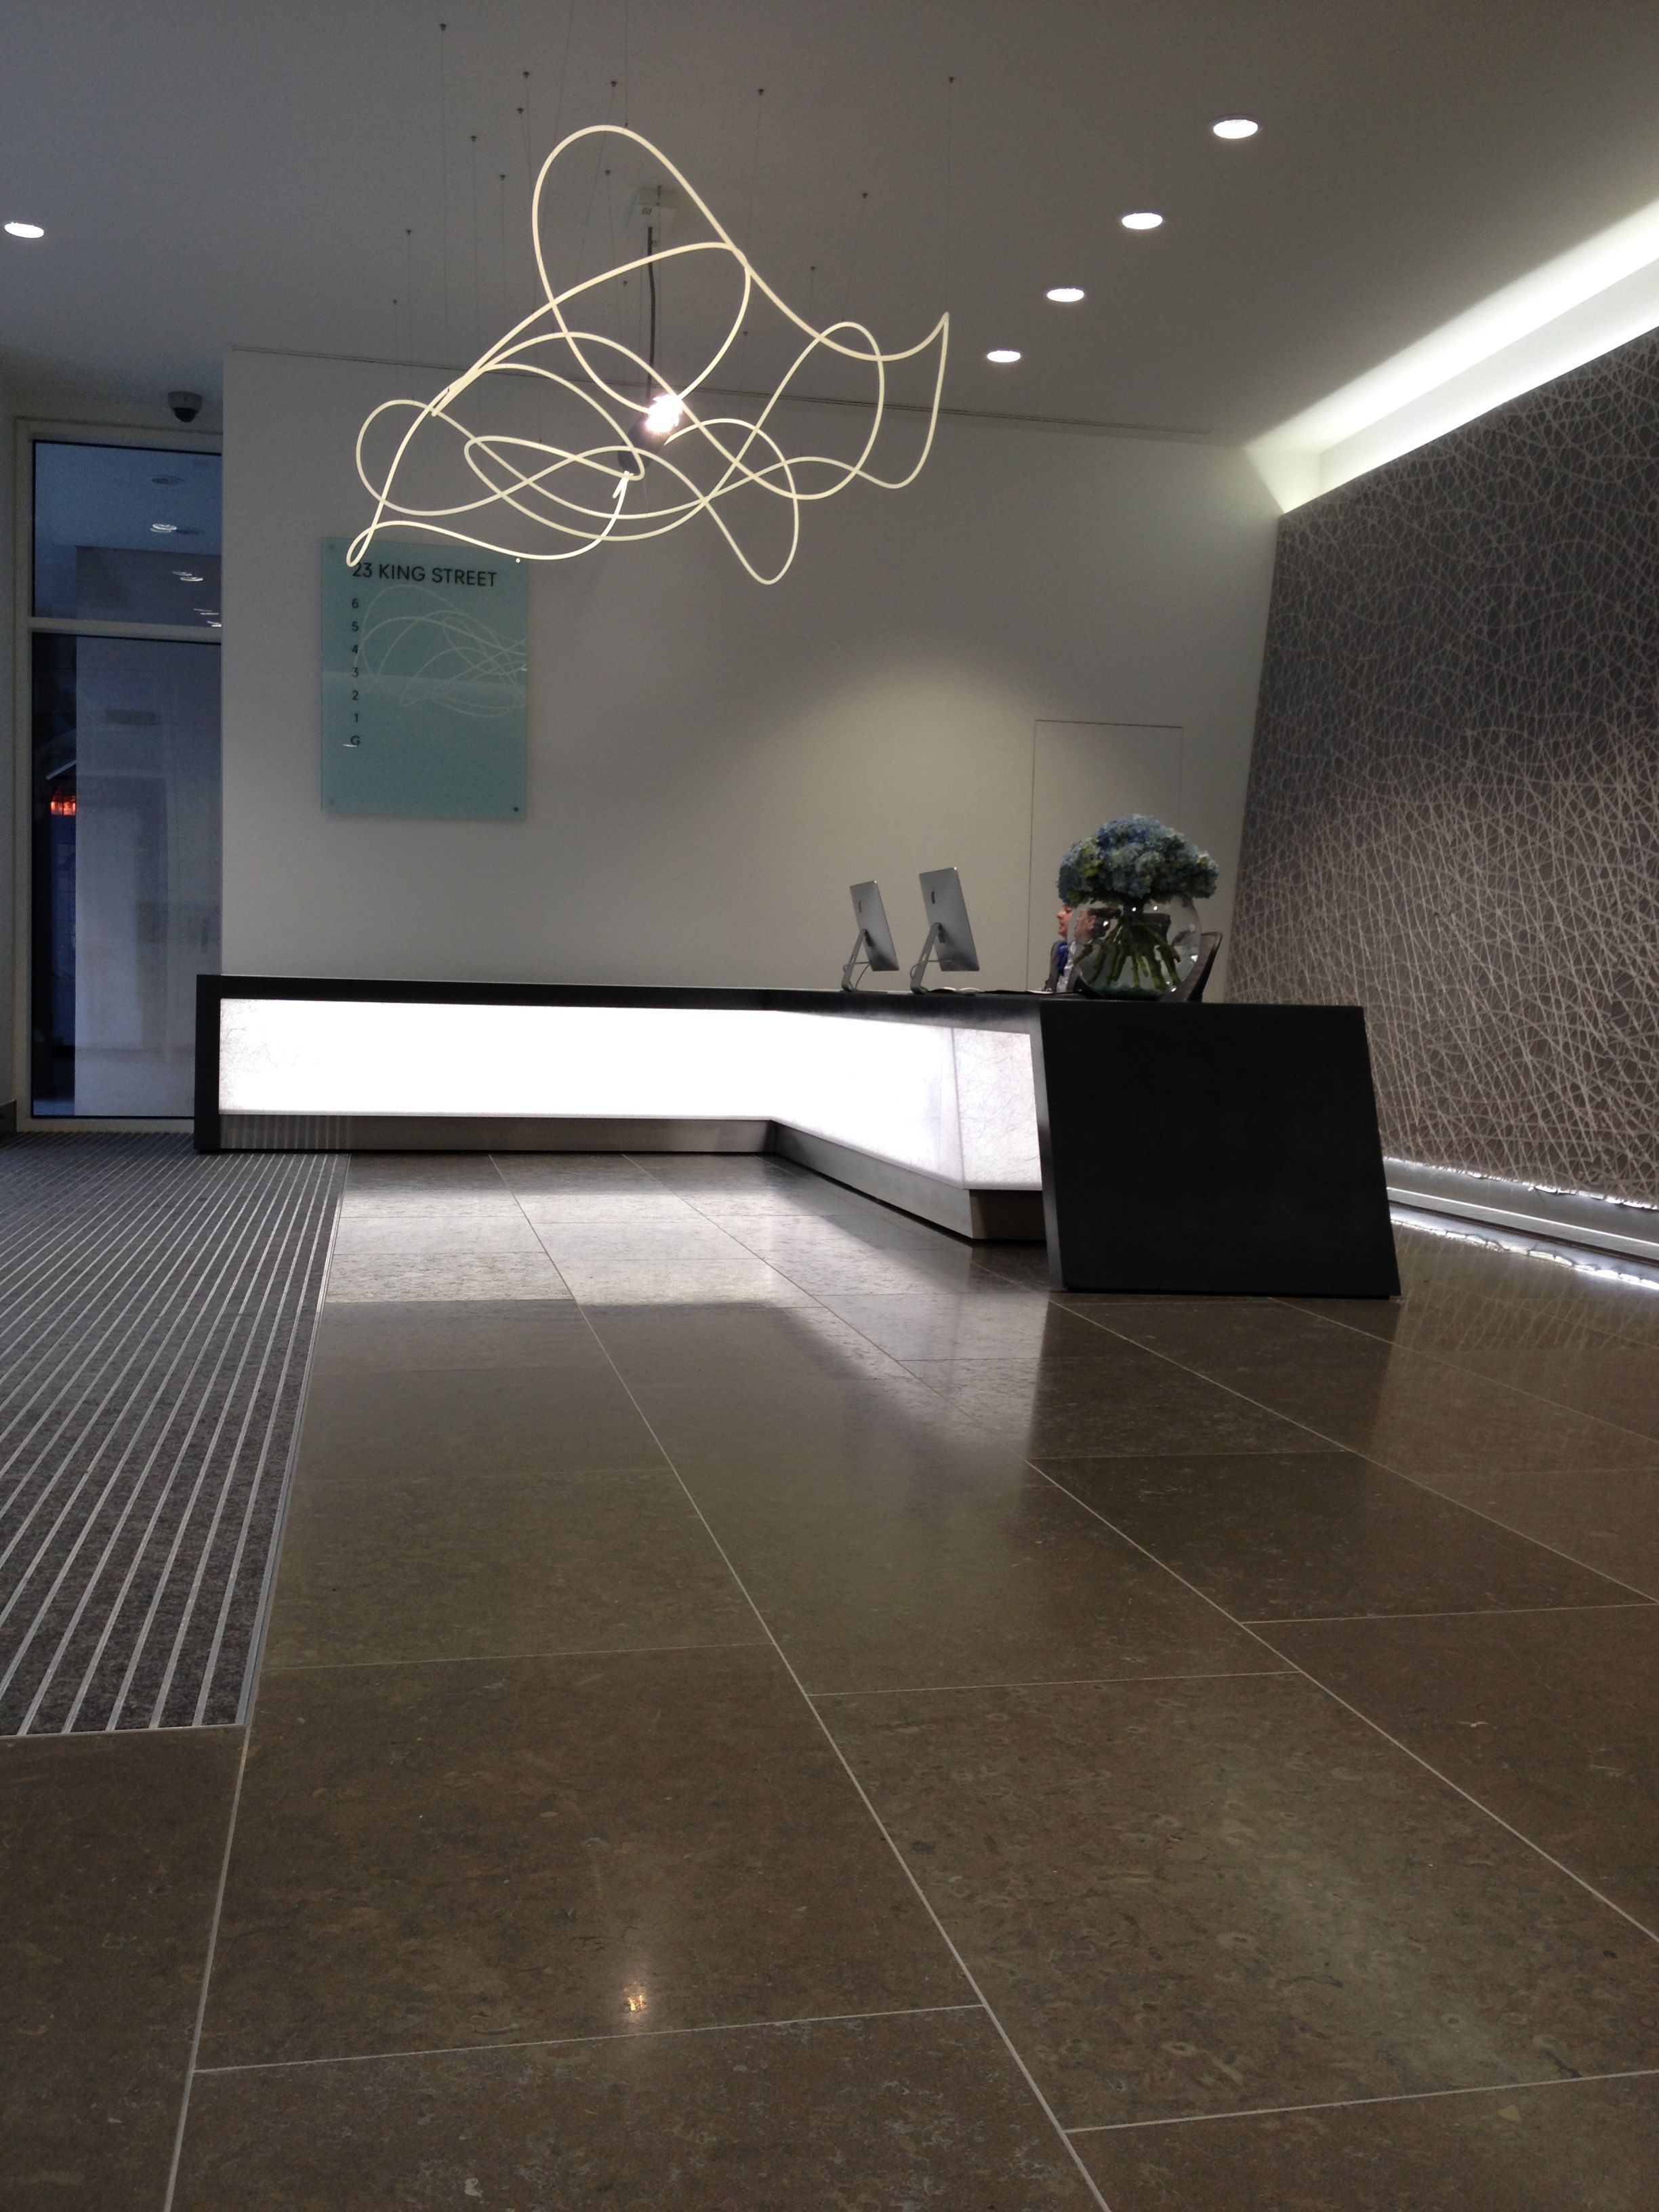 Bespoke Concrete Reception Desk Cladding By Mass Joinery By